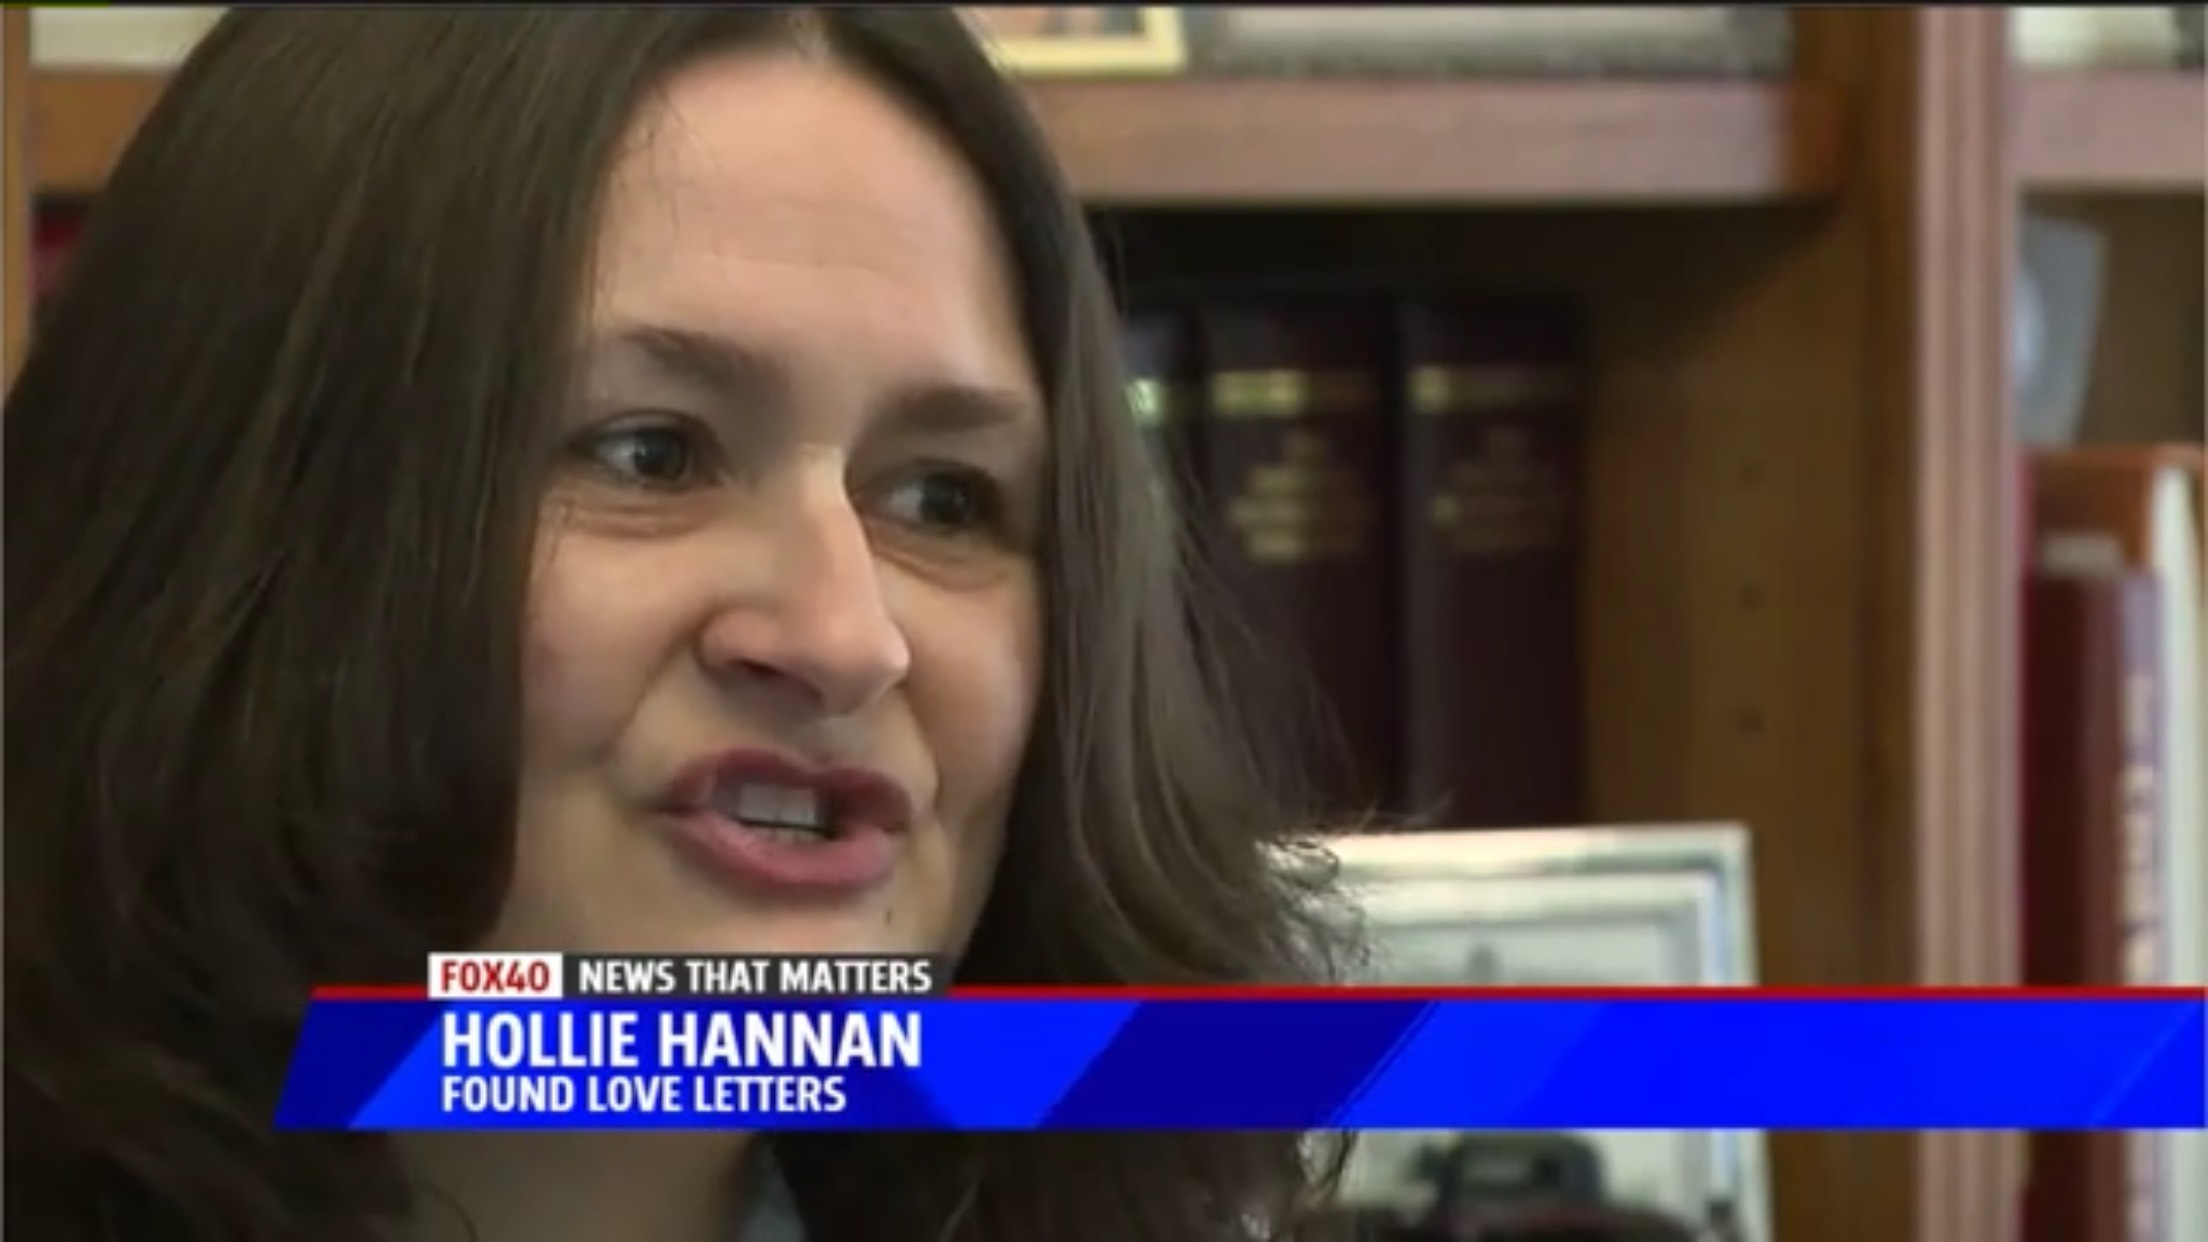 Hollie Hannan: Found Love Letters